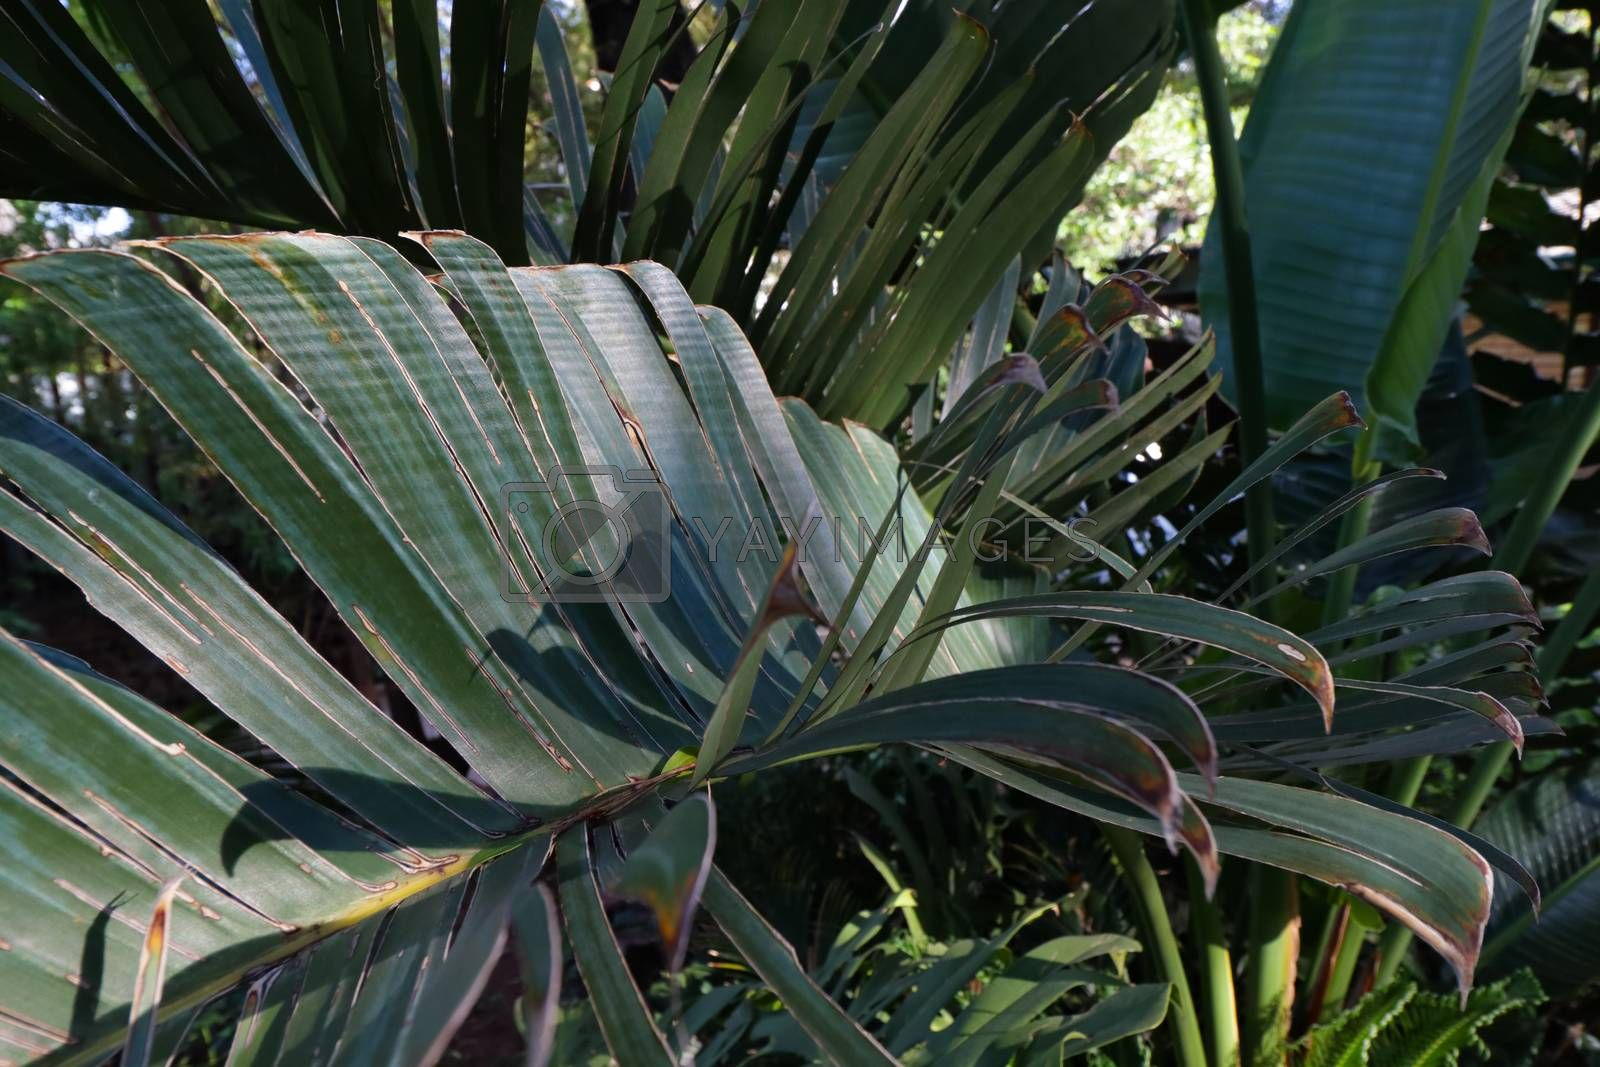 Variety of tropical green palm leaves and cycads, Pretoria, South Africa